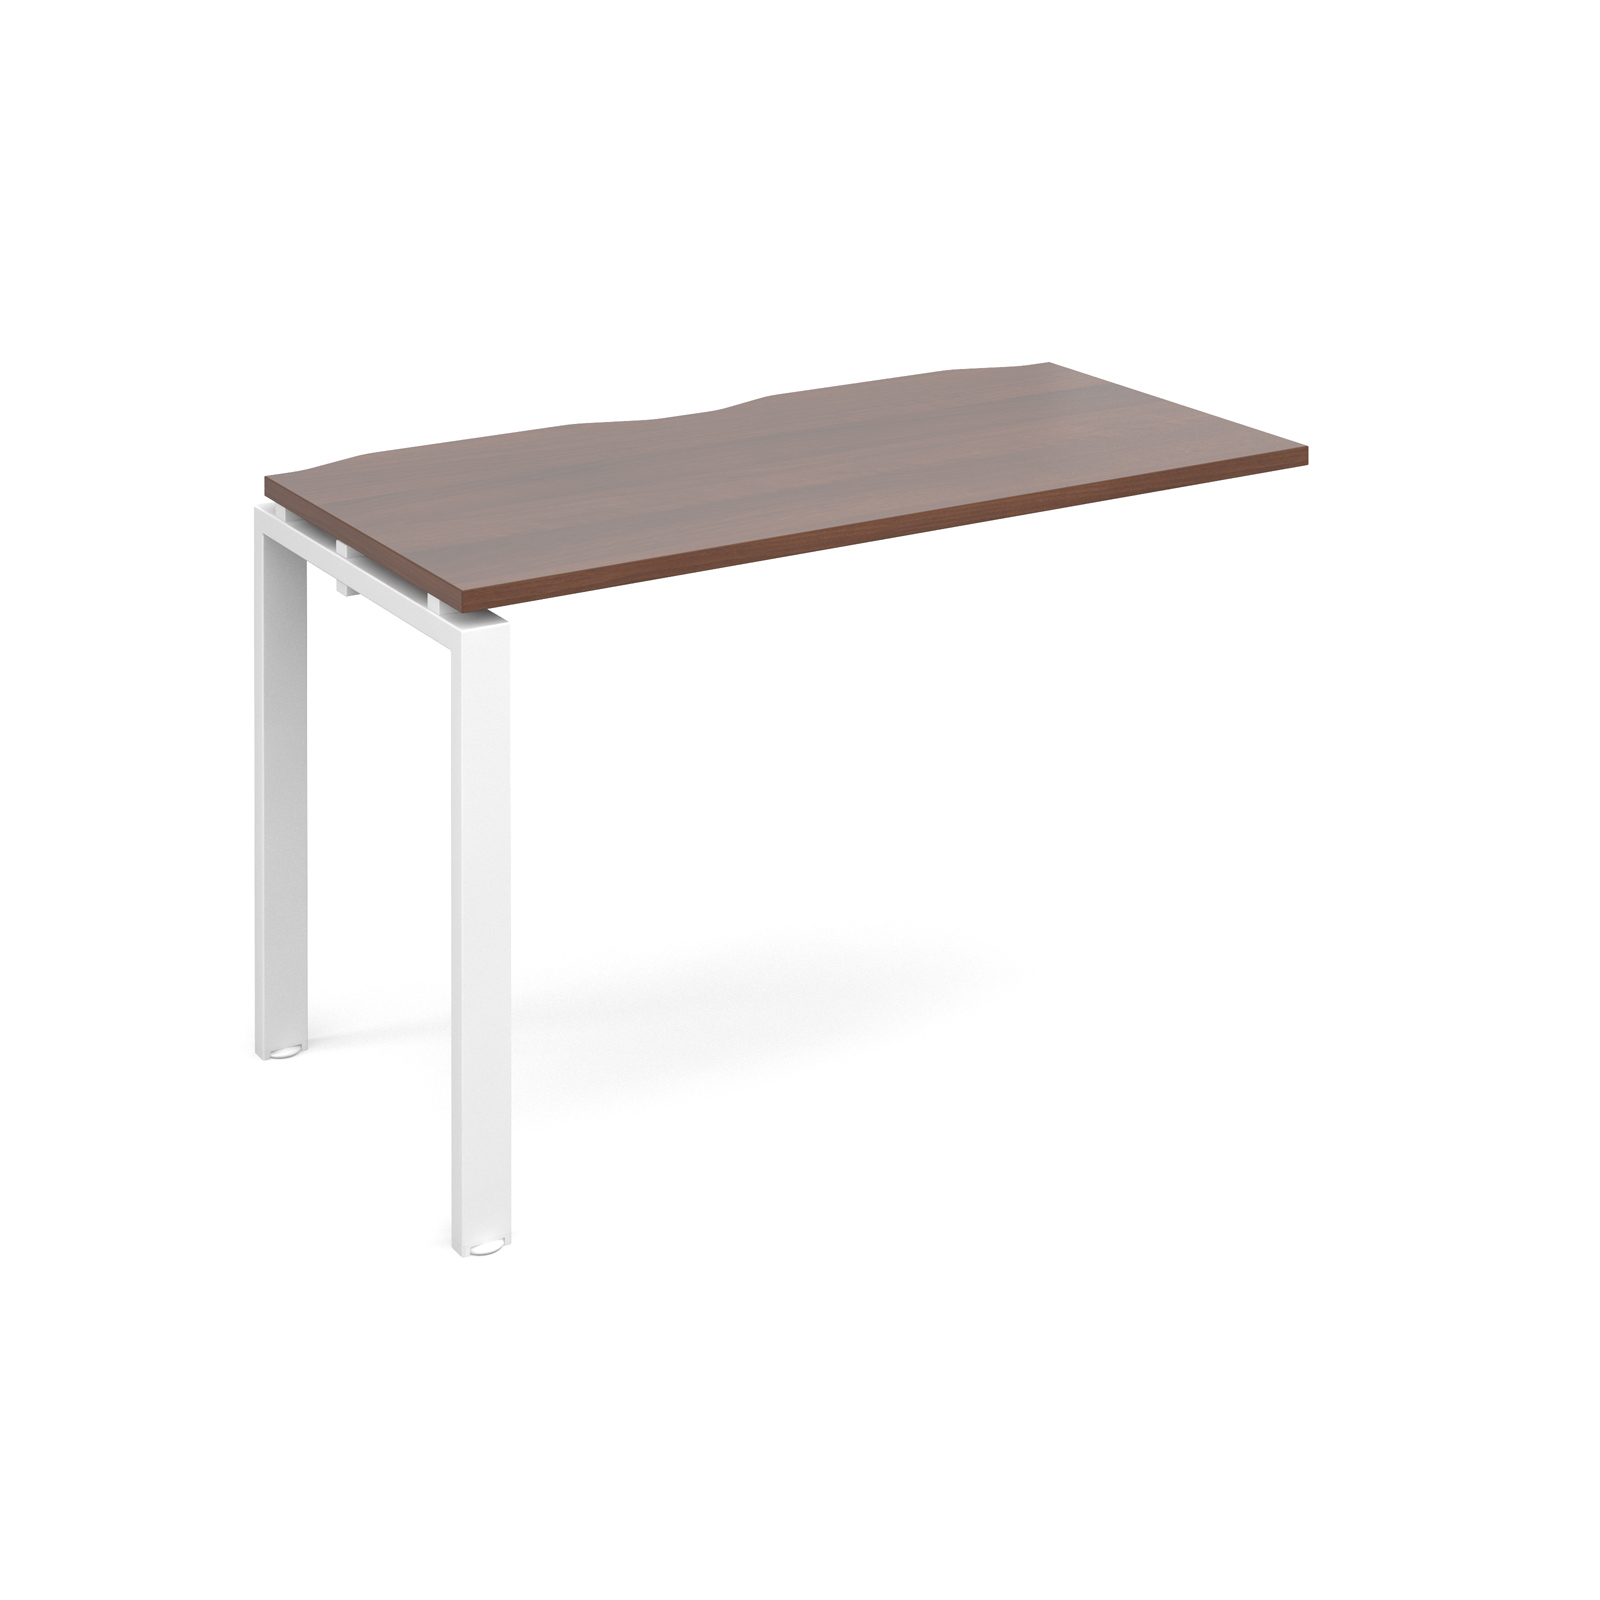 Adapt II 1200 x 600 x 725mm Single Add On Bay - Walnut / White Leg